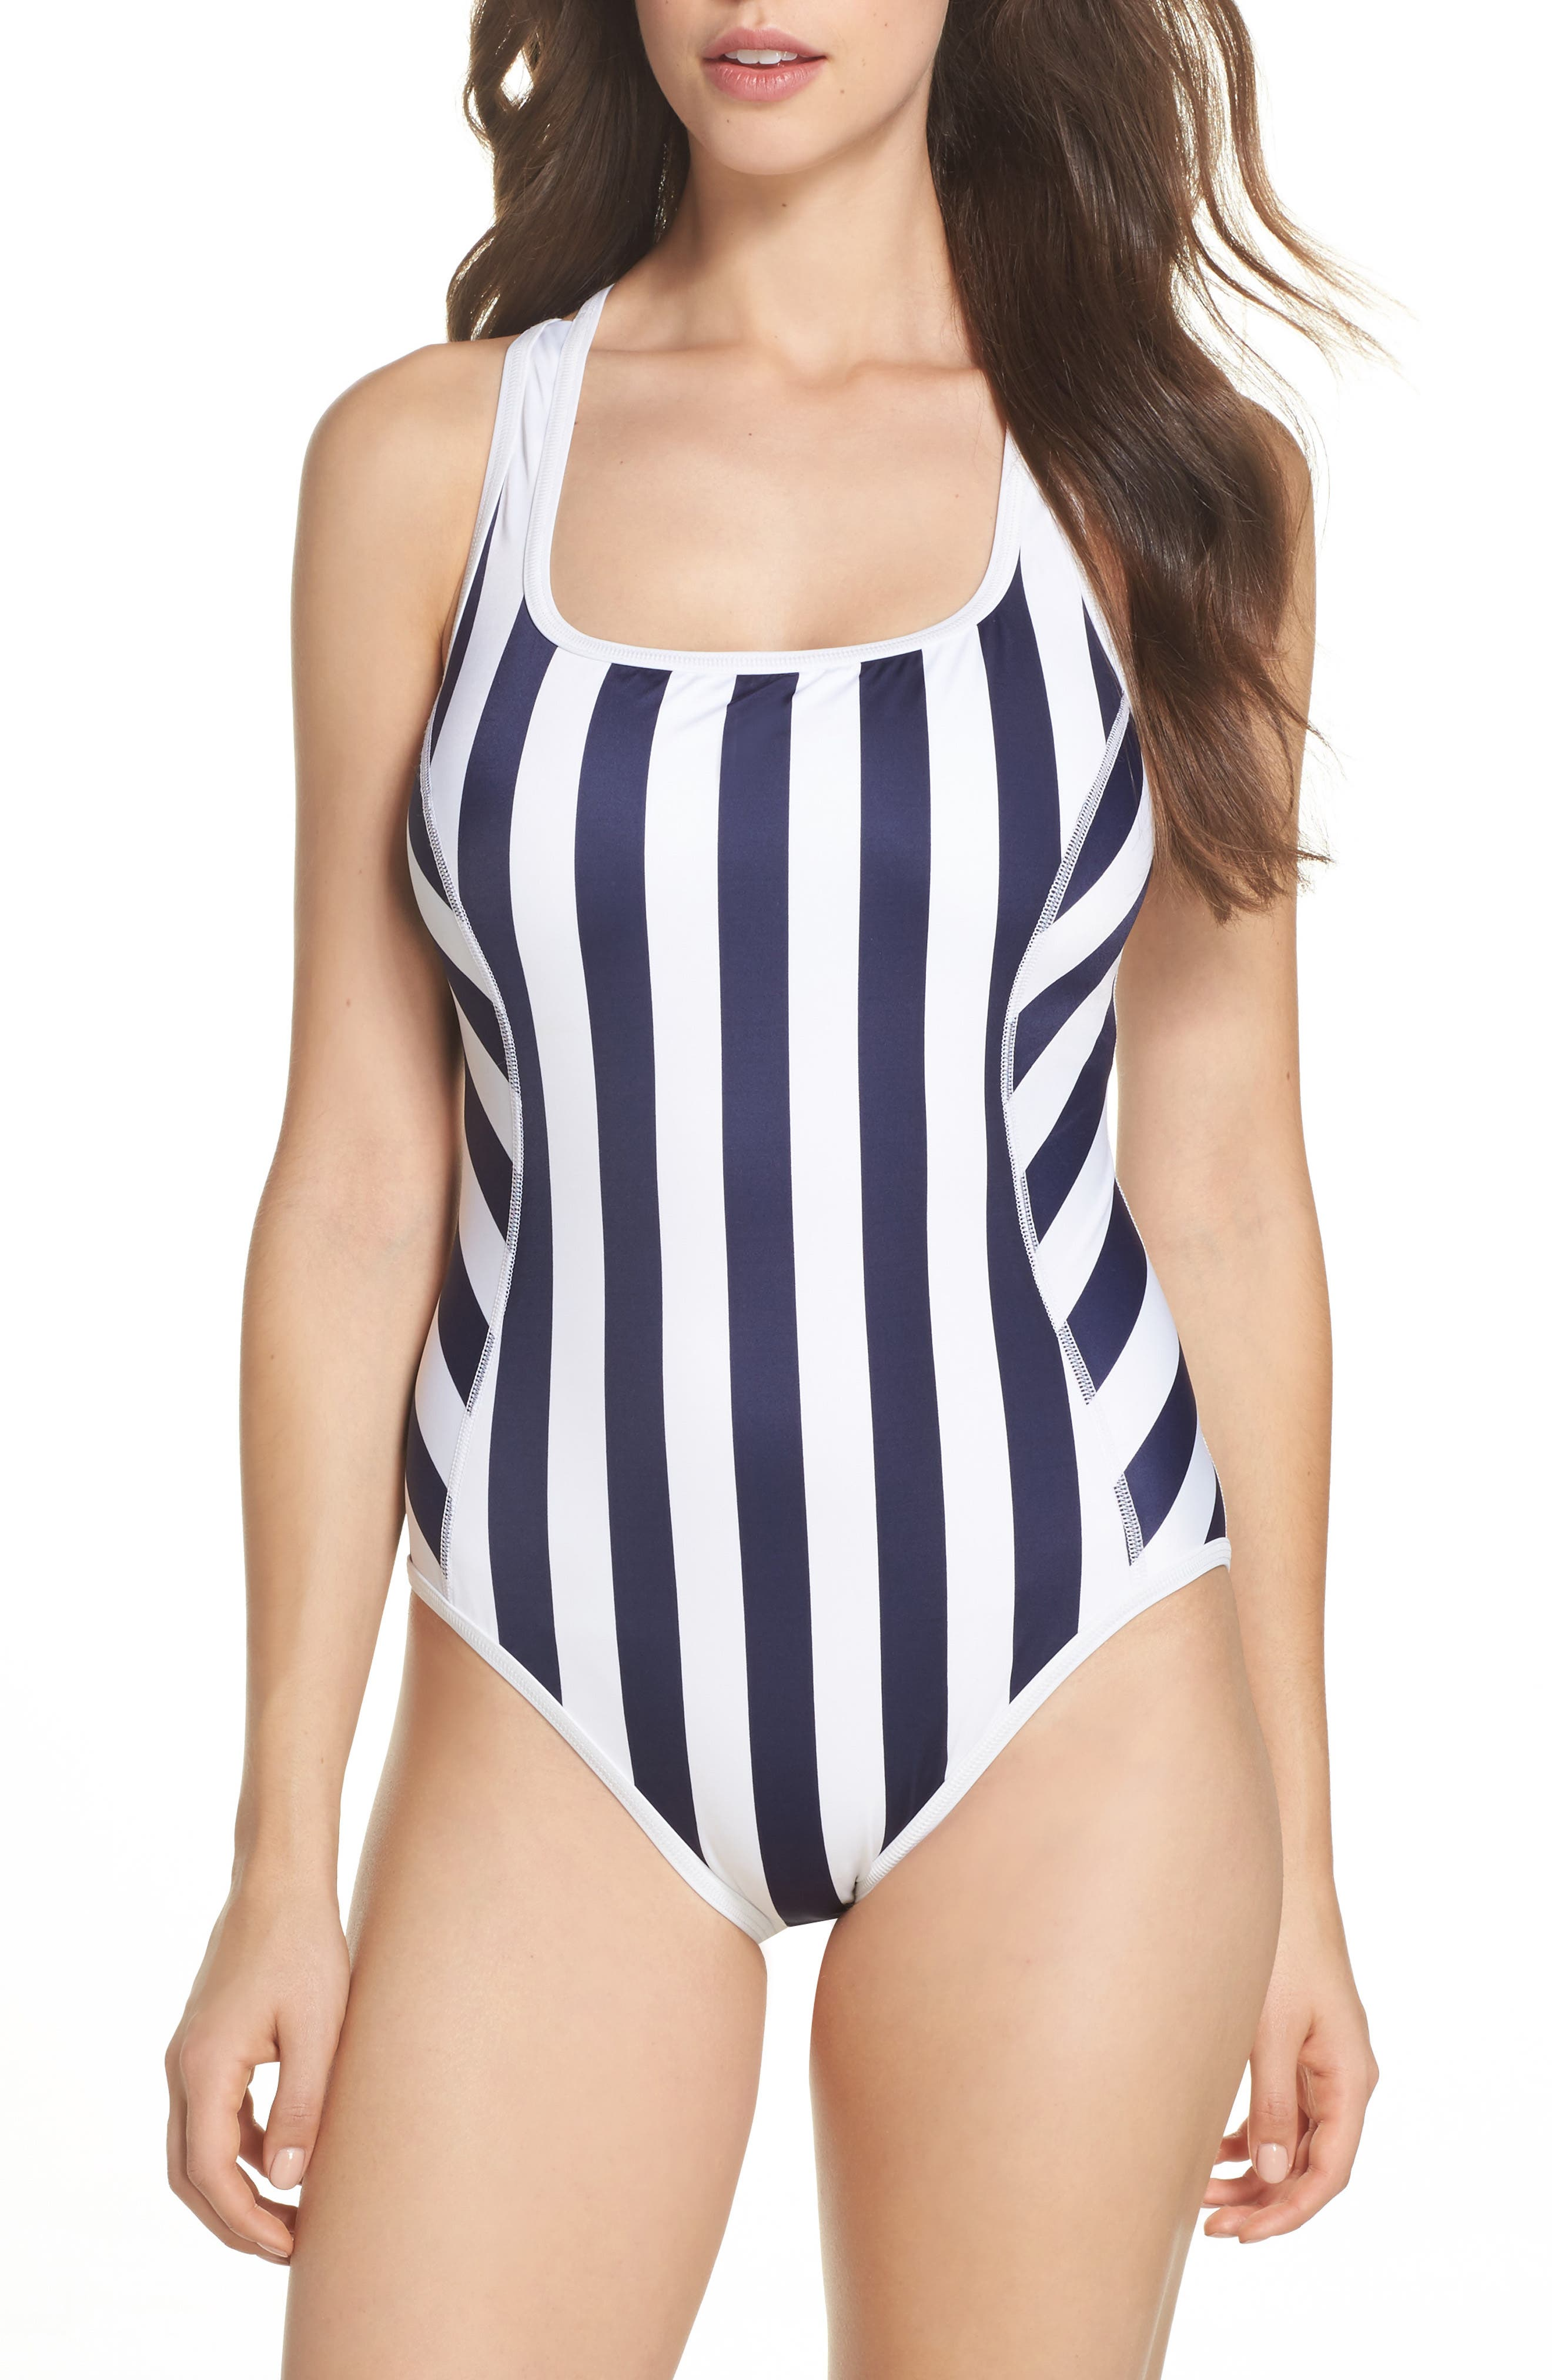 Alternate Image 1 Selected - Tommy Bahama Island Active One-Piece Swimsuit